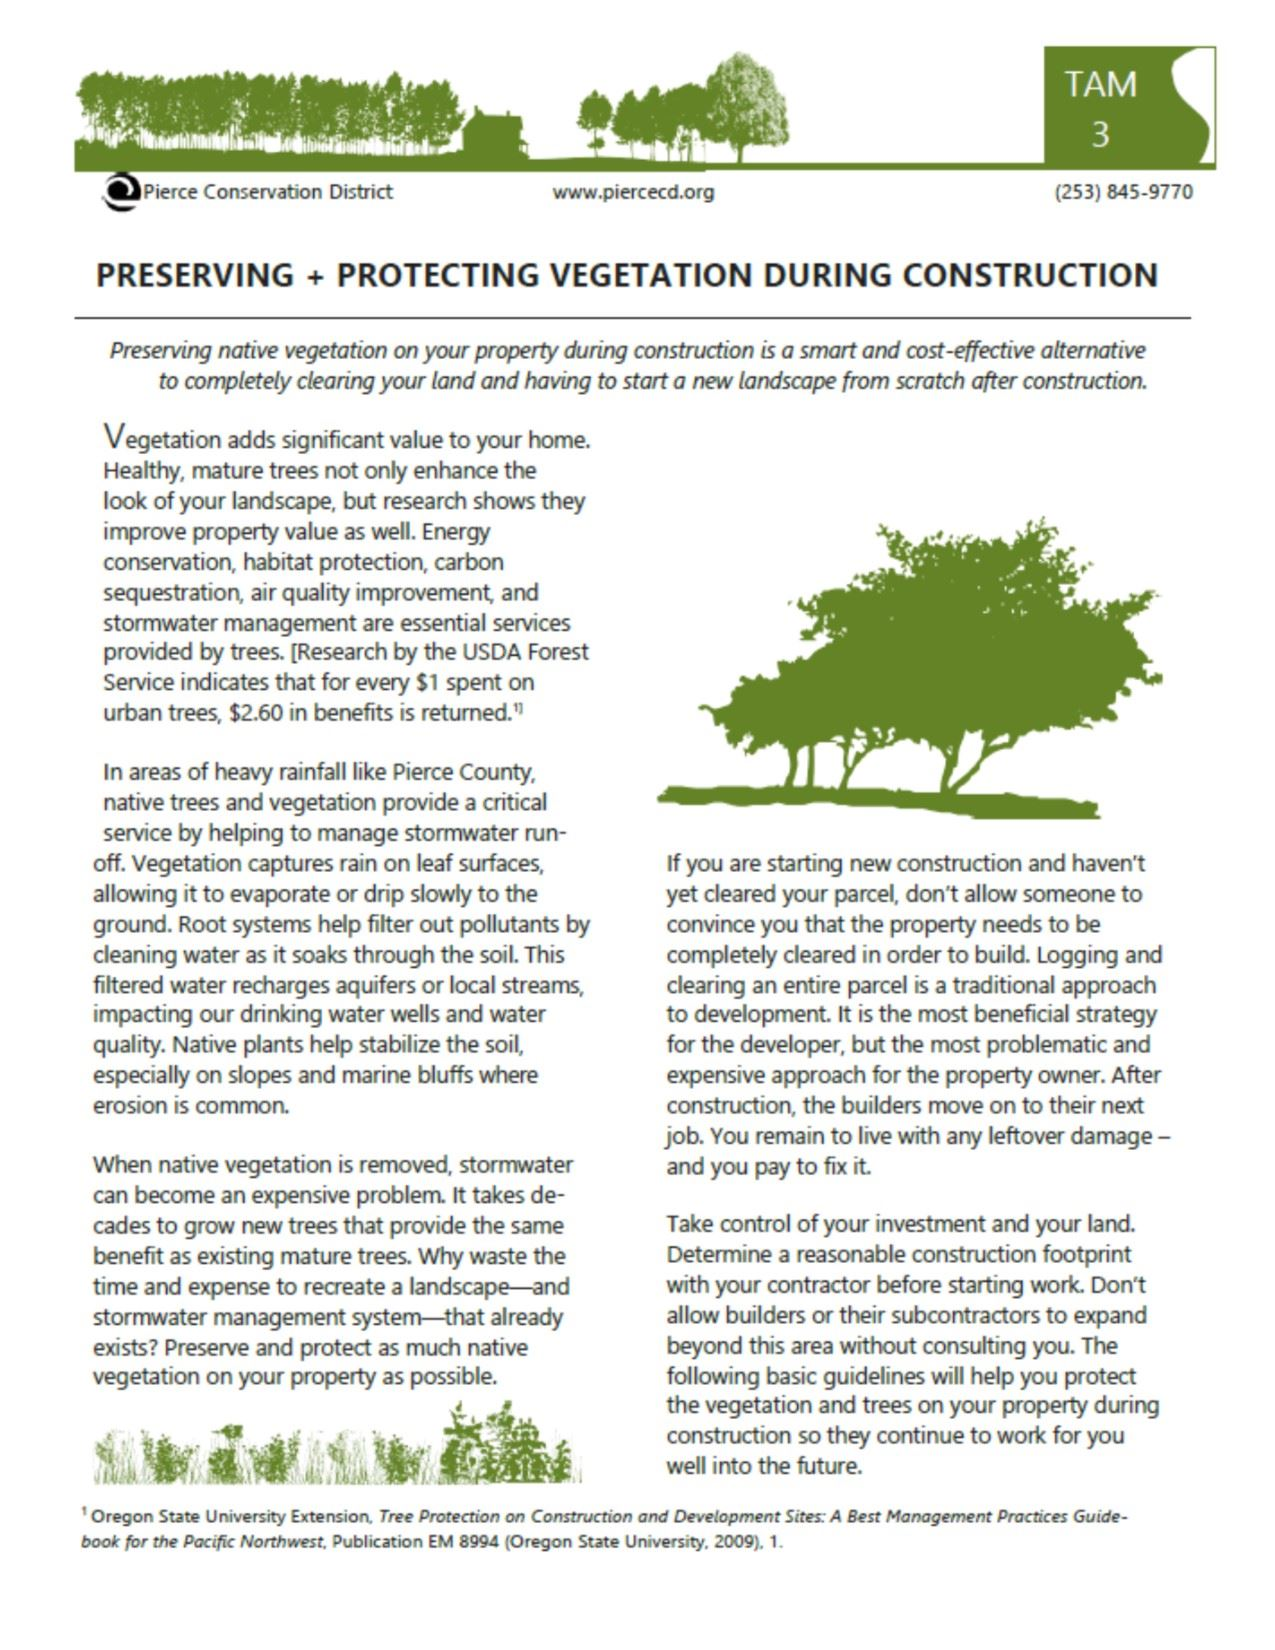 Protecting trees and veg during construction